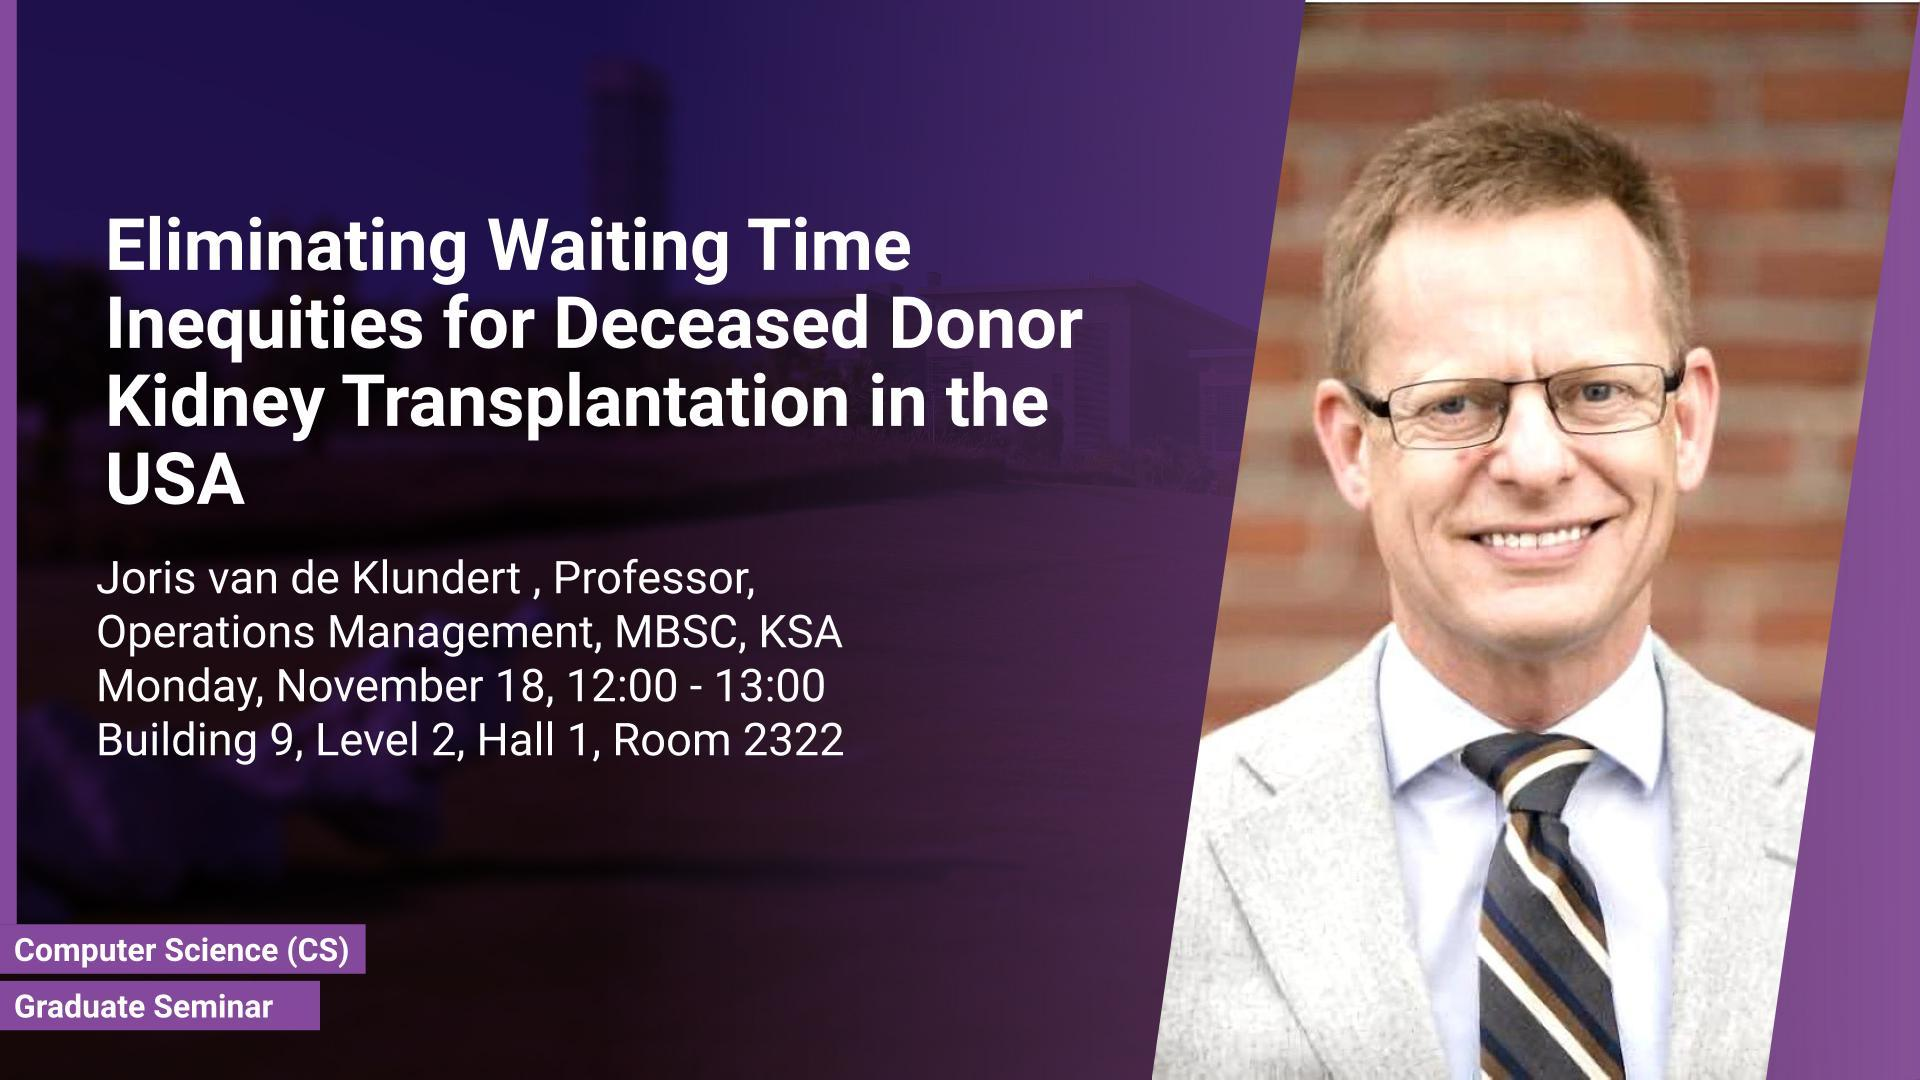 KAUST CEMSE CS Graduate Seminar Joris Van de Klundert Eliminating Waiting Time Inequities for Deceased Donor